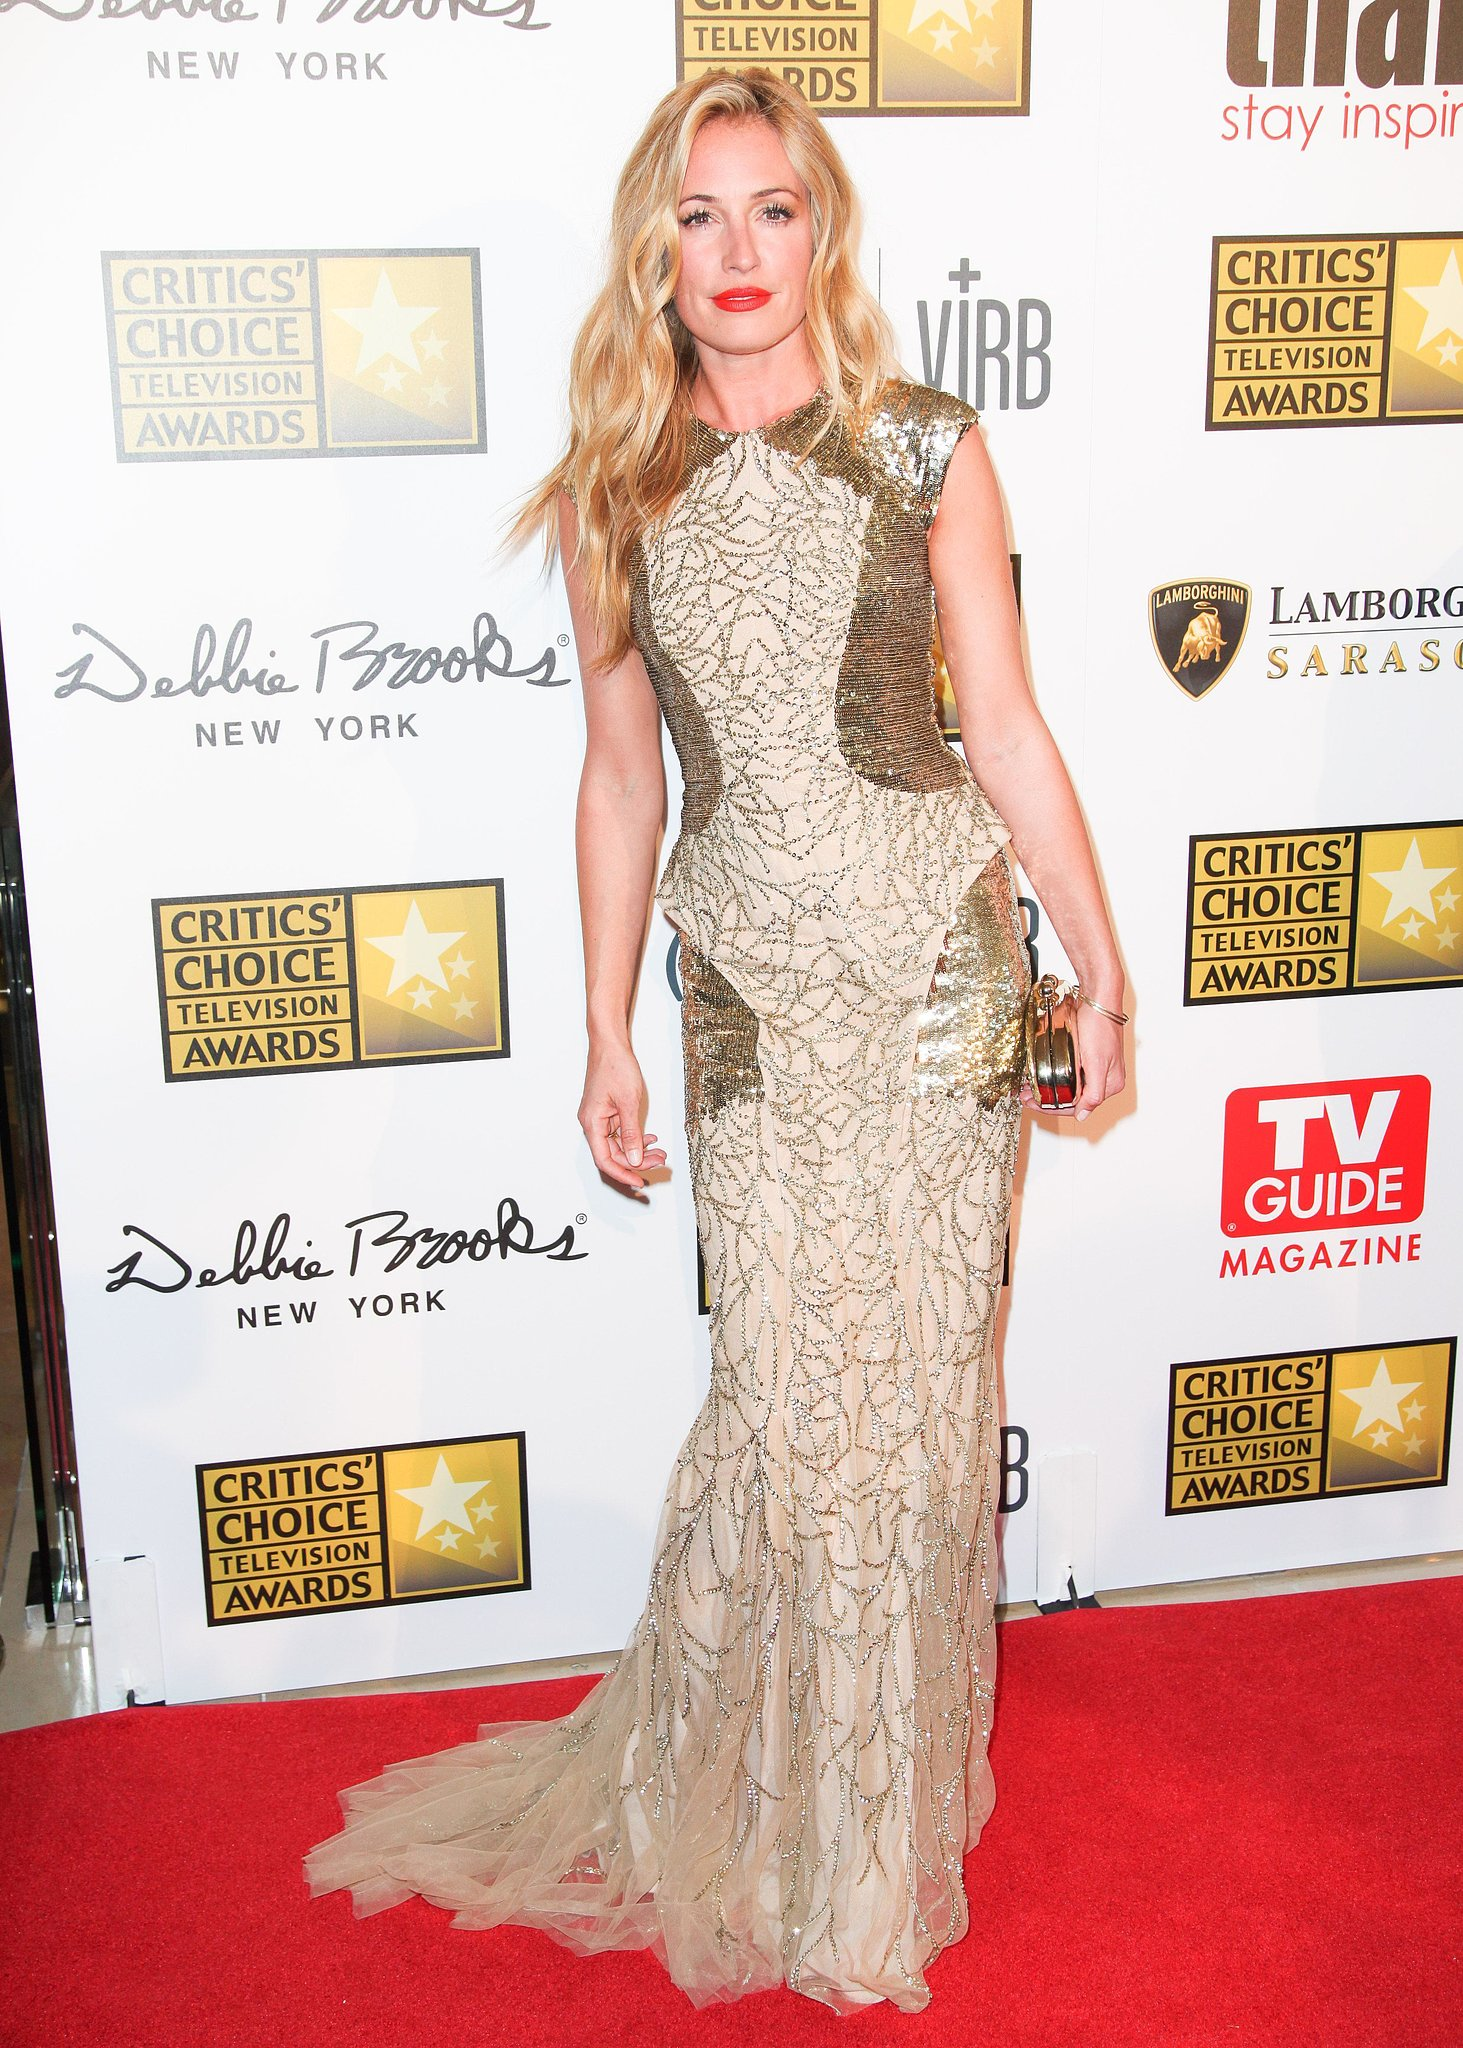 Cat Deeley at the 2013 Critics' Choice Television Awards in Los Angeles.  Source: Aleks Kocev/BFAnyc.com